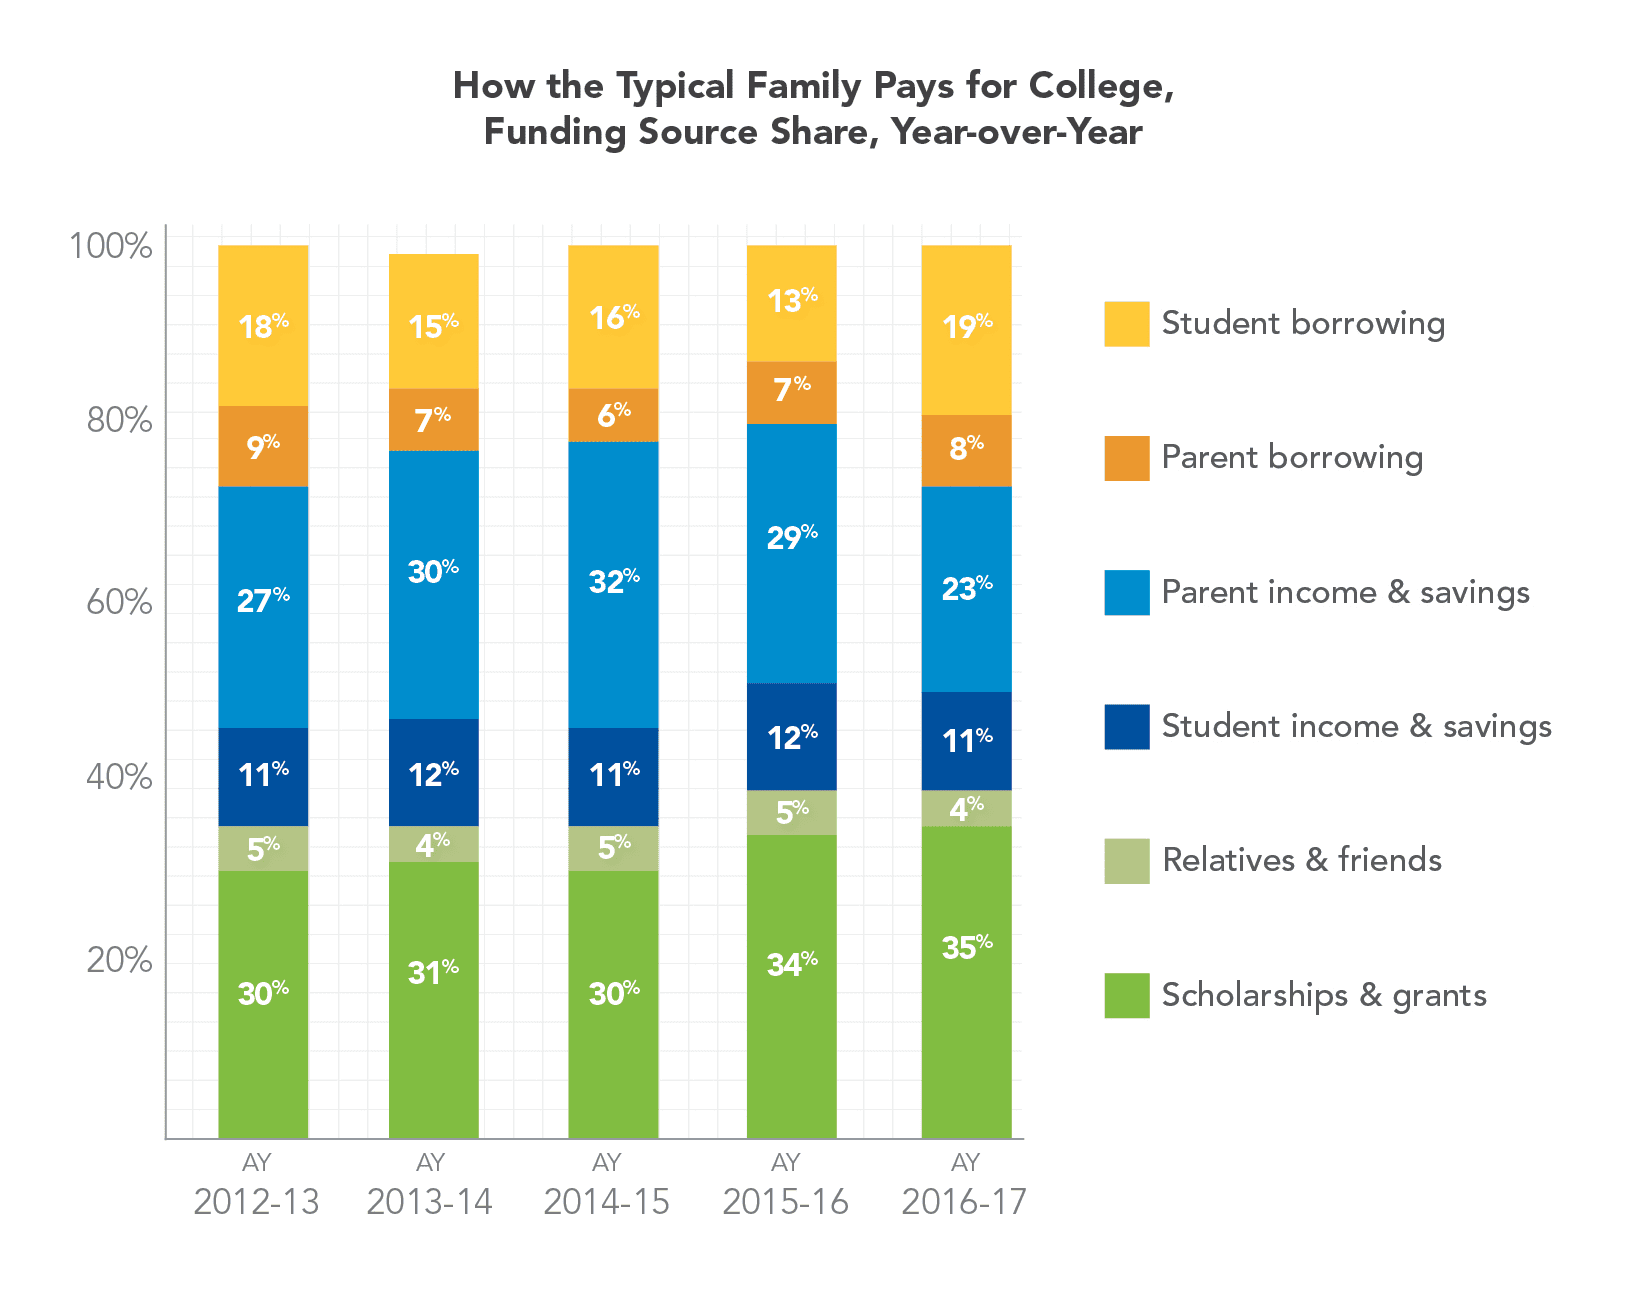 CNBC: College costs for typical family